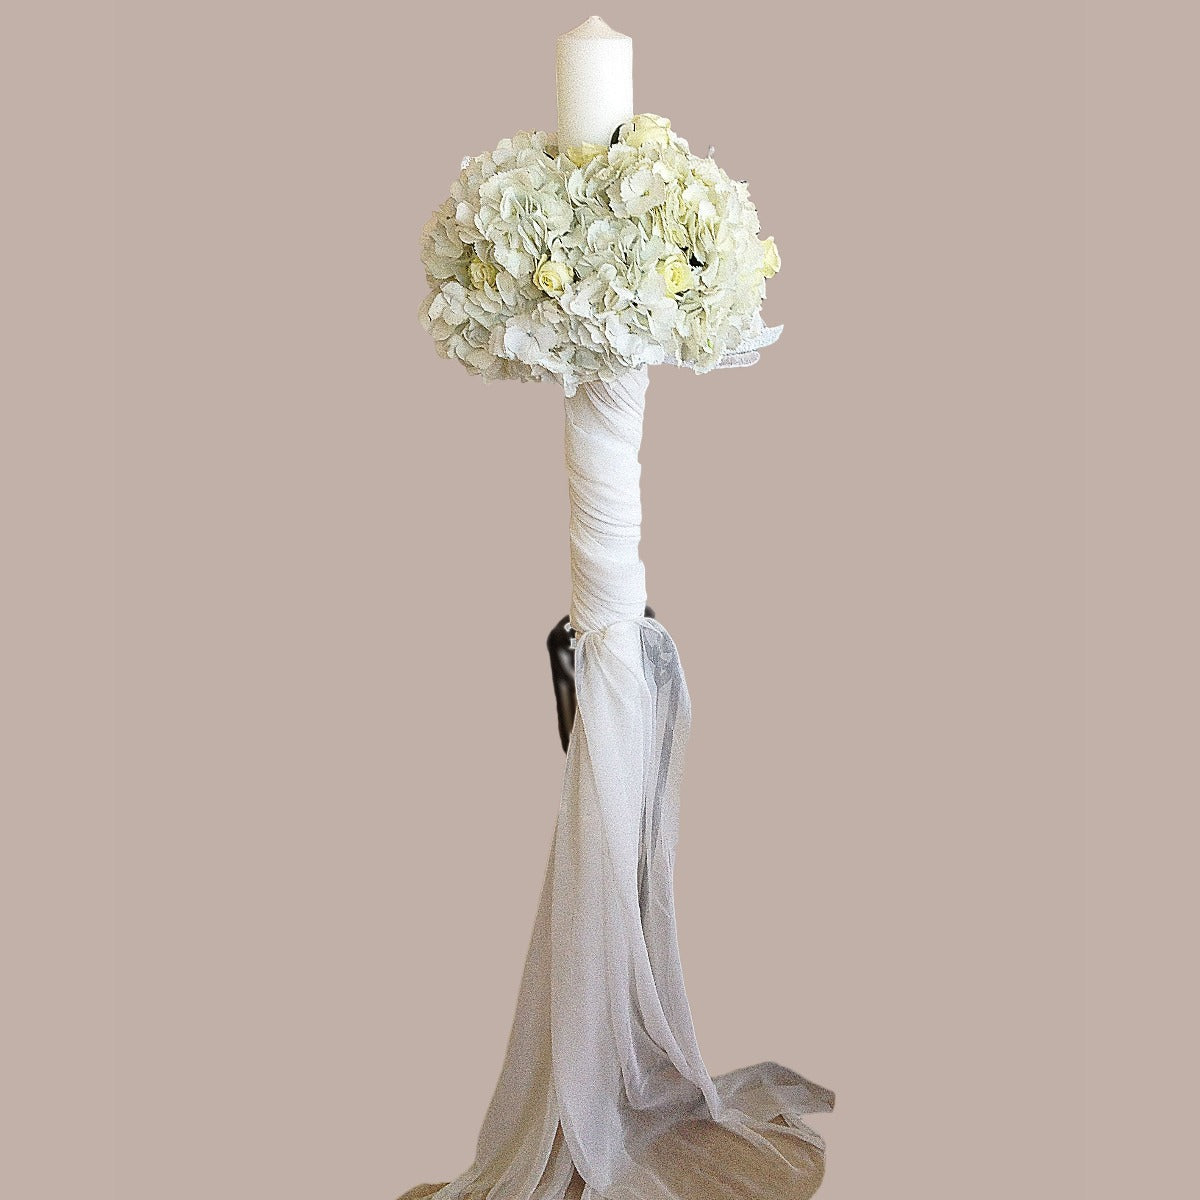 floral-handmade-orthodox-wedding-candle